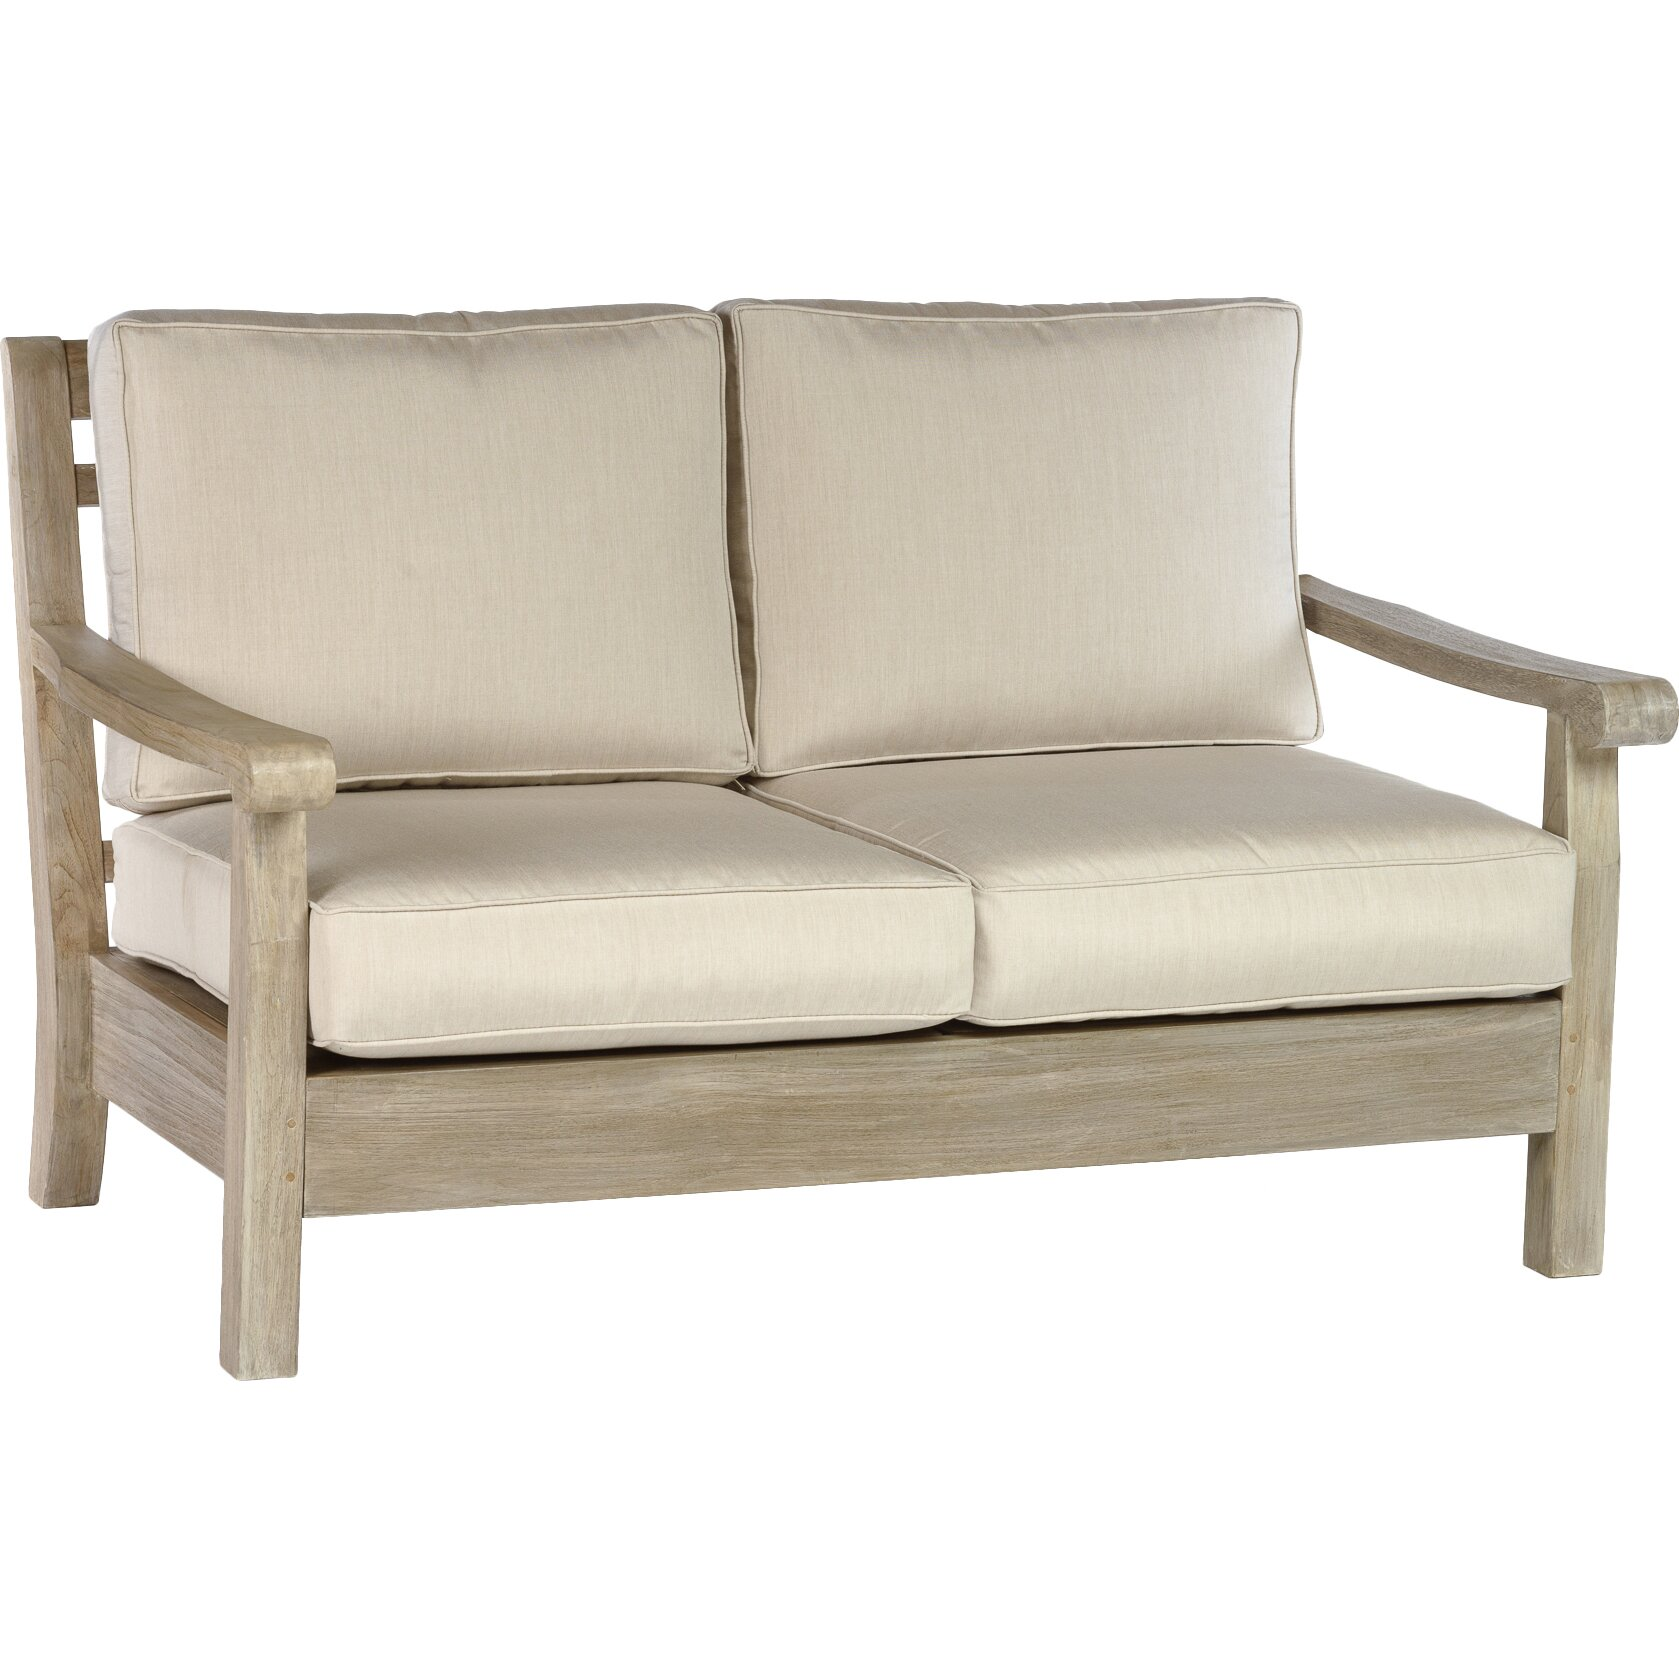 Co9 Design Jackson Loveseat With Cushions Reviews